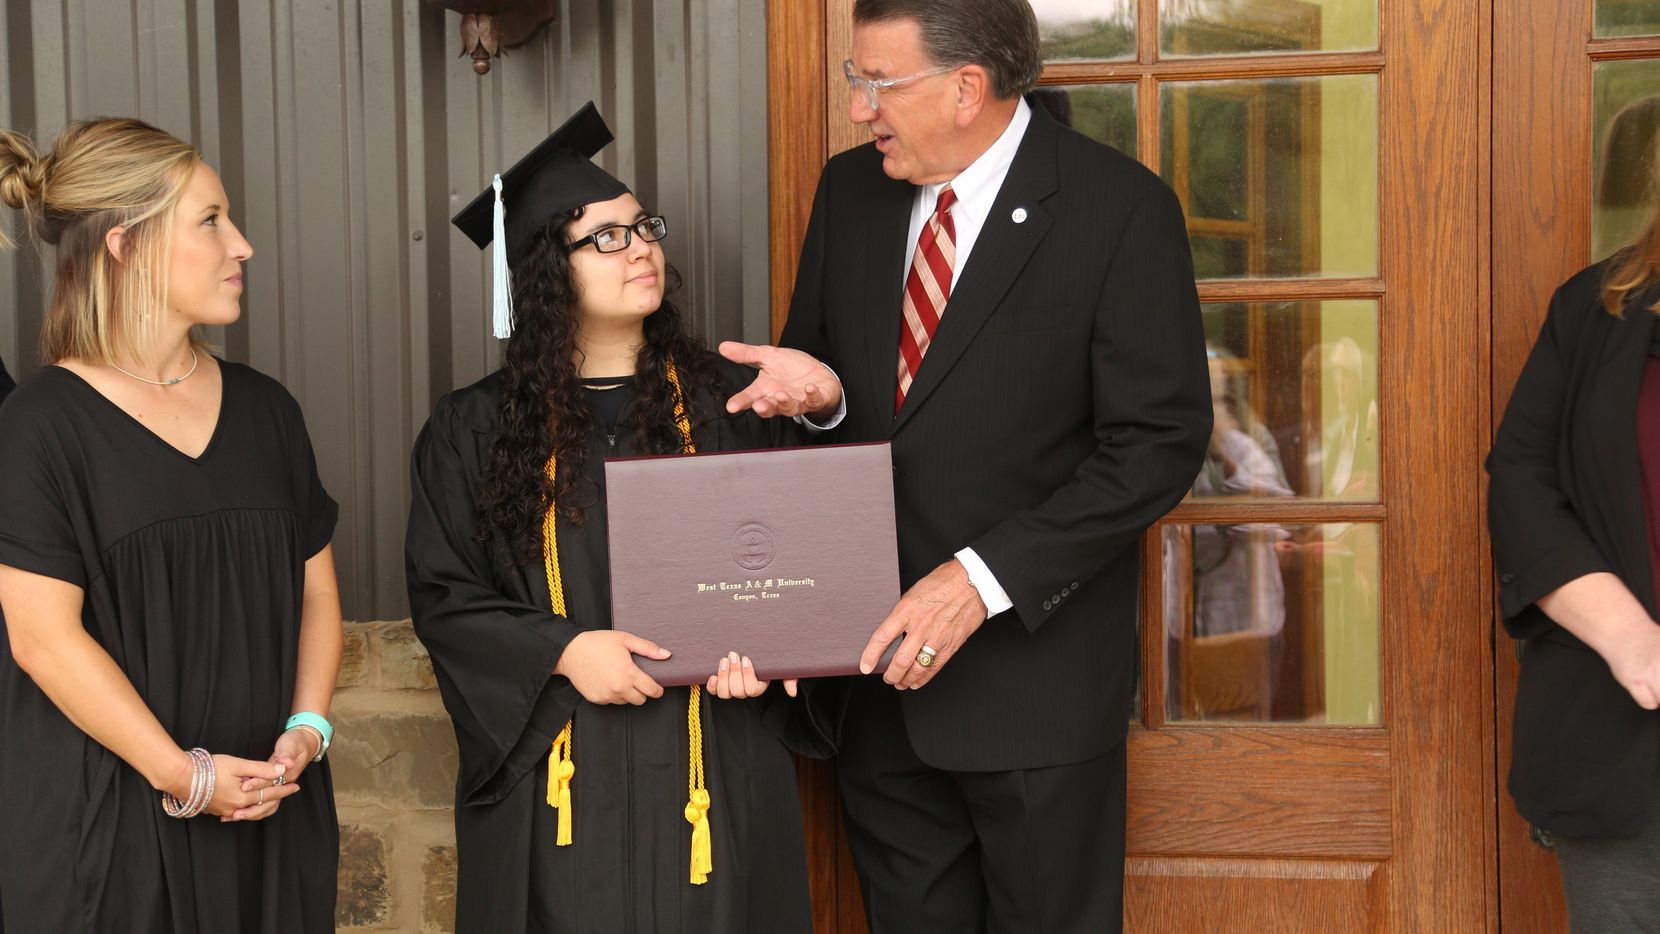 Morgan Martin, Roscoe ISD Dean of Continuing Education, left, celebrates the graduation of Amanda Sanchez, middle, with West Texas A&M University President Walter Wendler, right.